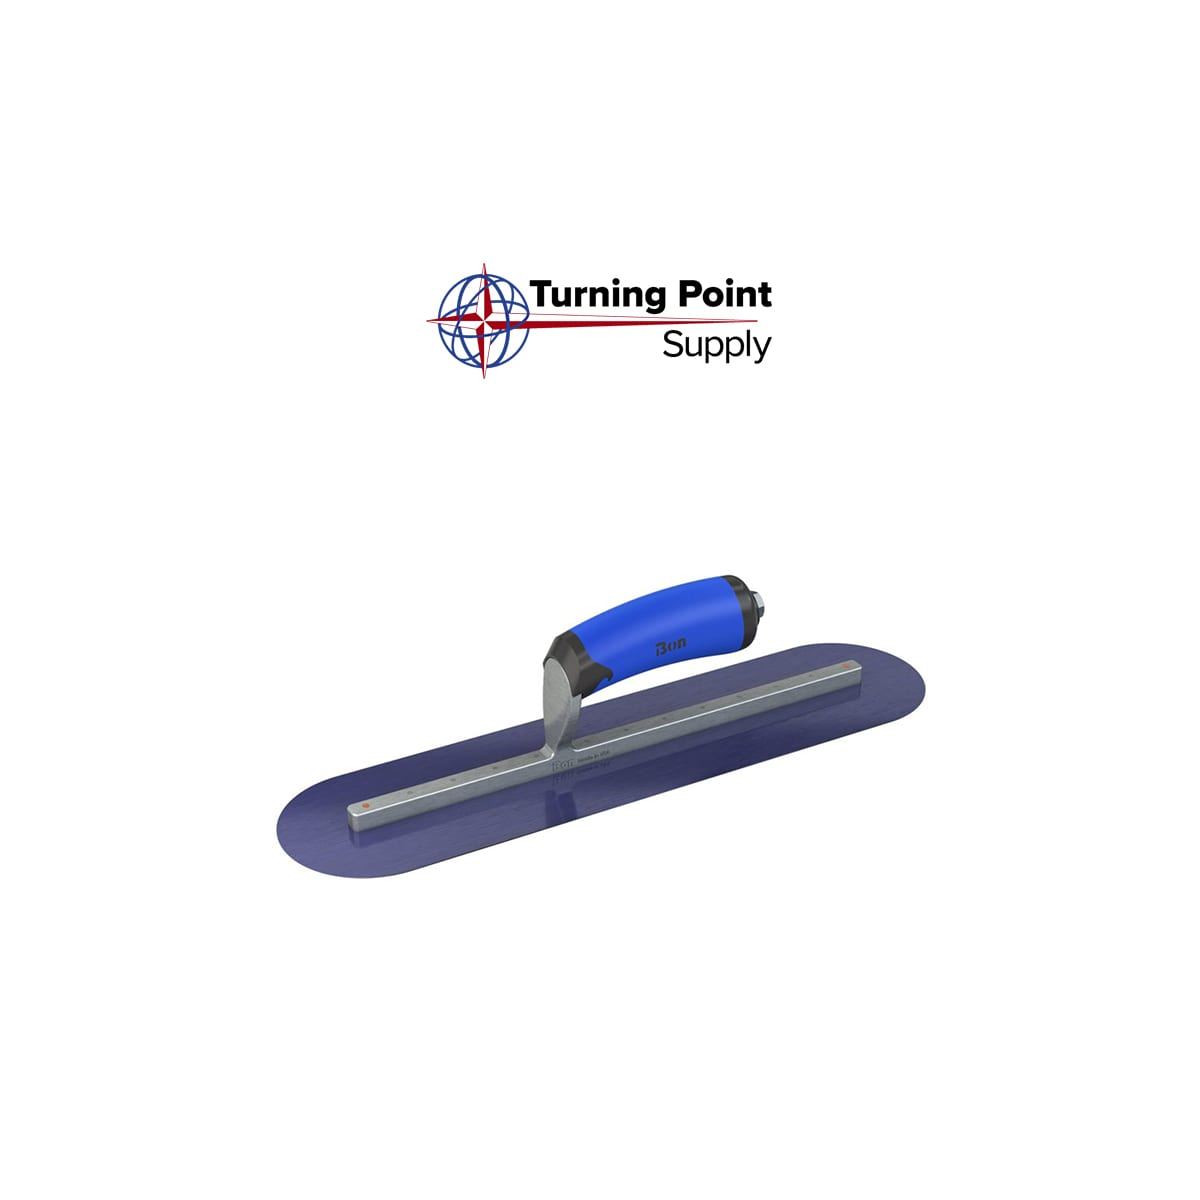 Righyt BLUE STEEL FINISHING TROWEL ROUND END 18 X 4 Bon Tools 62-584